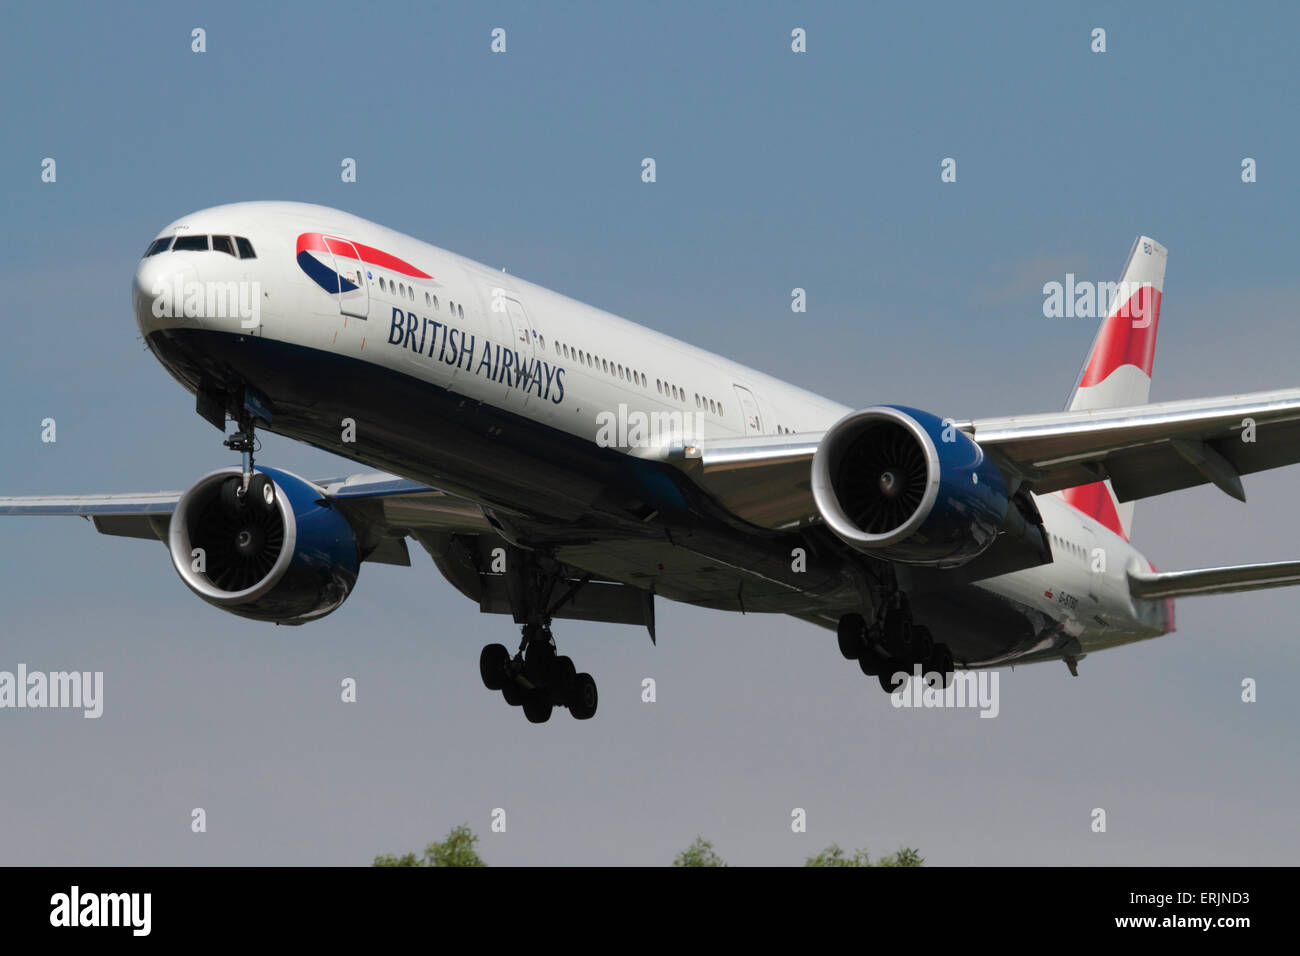 British Airways Boeing 777-300ER twin-engine long-haul commercial jet plane on approach to London Heathrow. Closeup - Stock Image